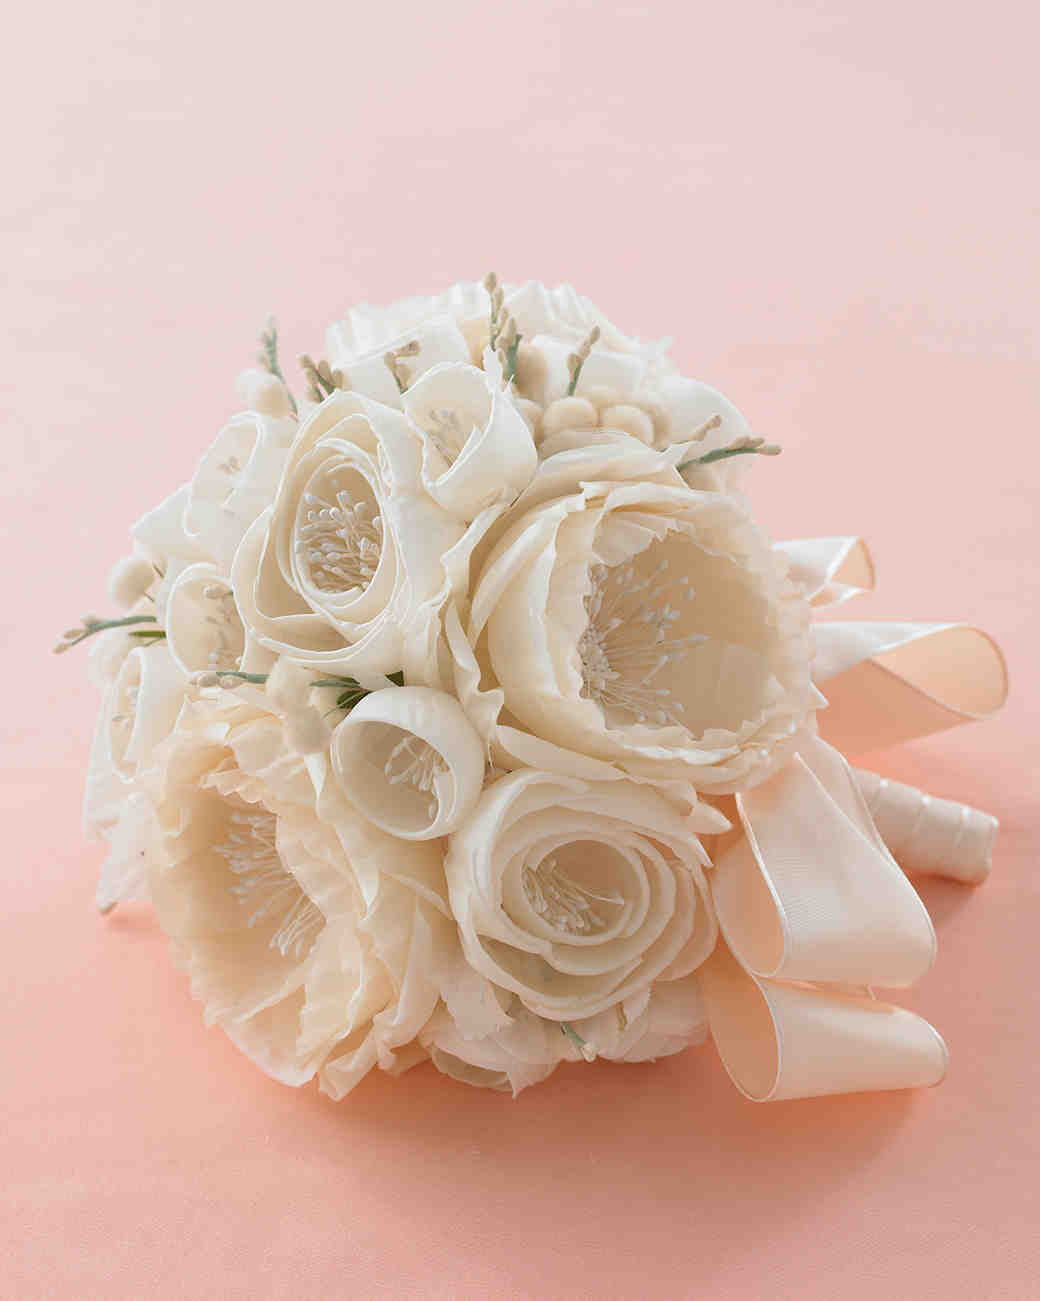 diy-sources-ribbon-flowers-nicholas-kniel-wd103982bouqueta-1014.jpg